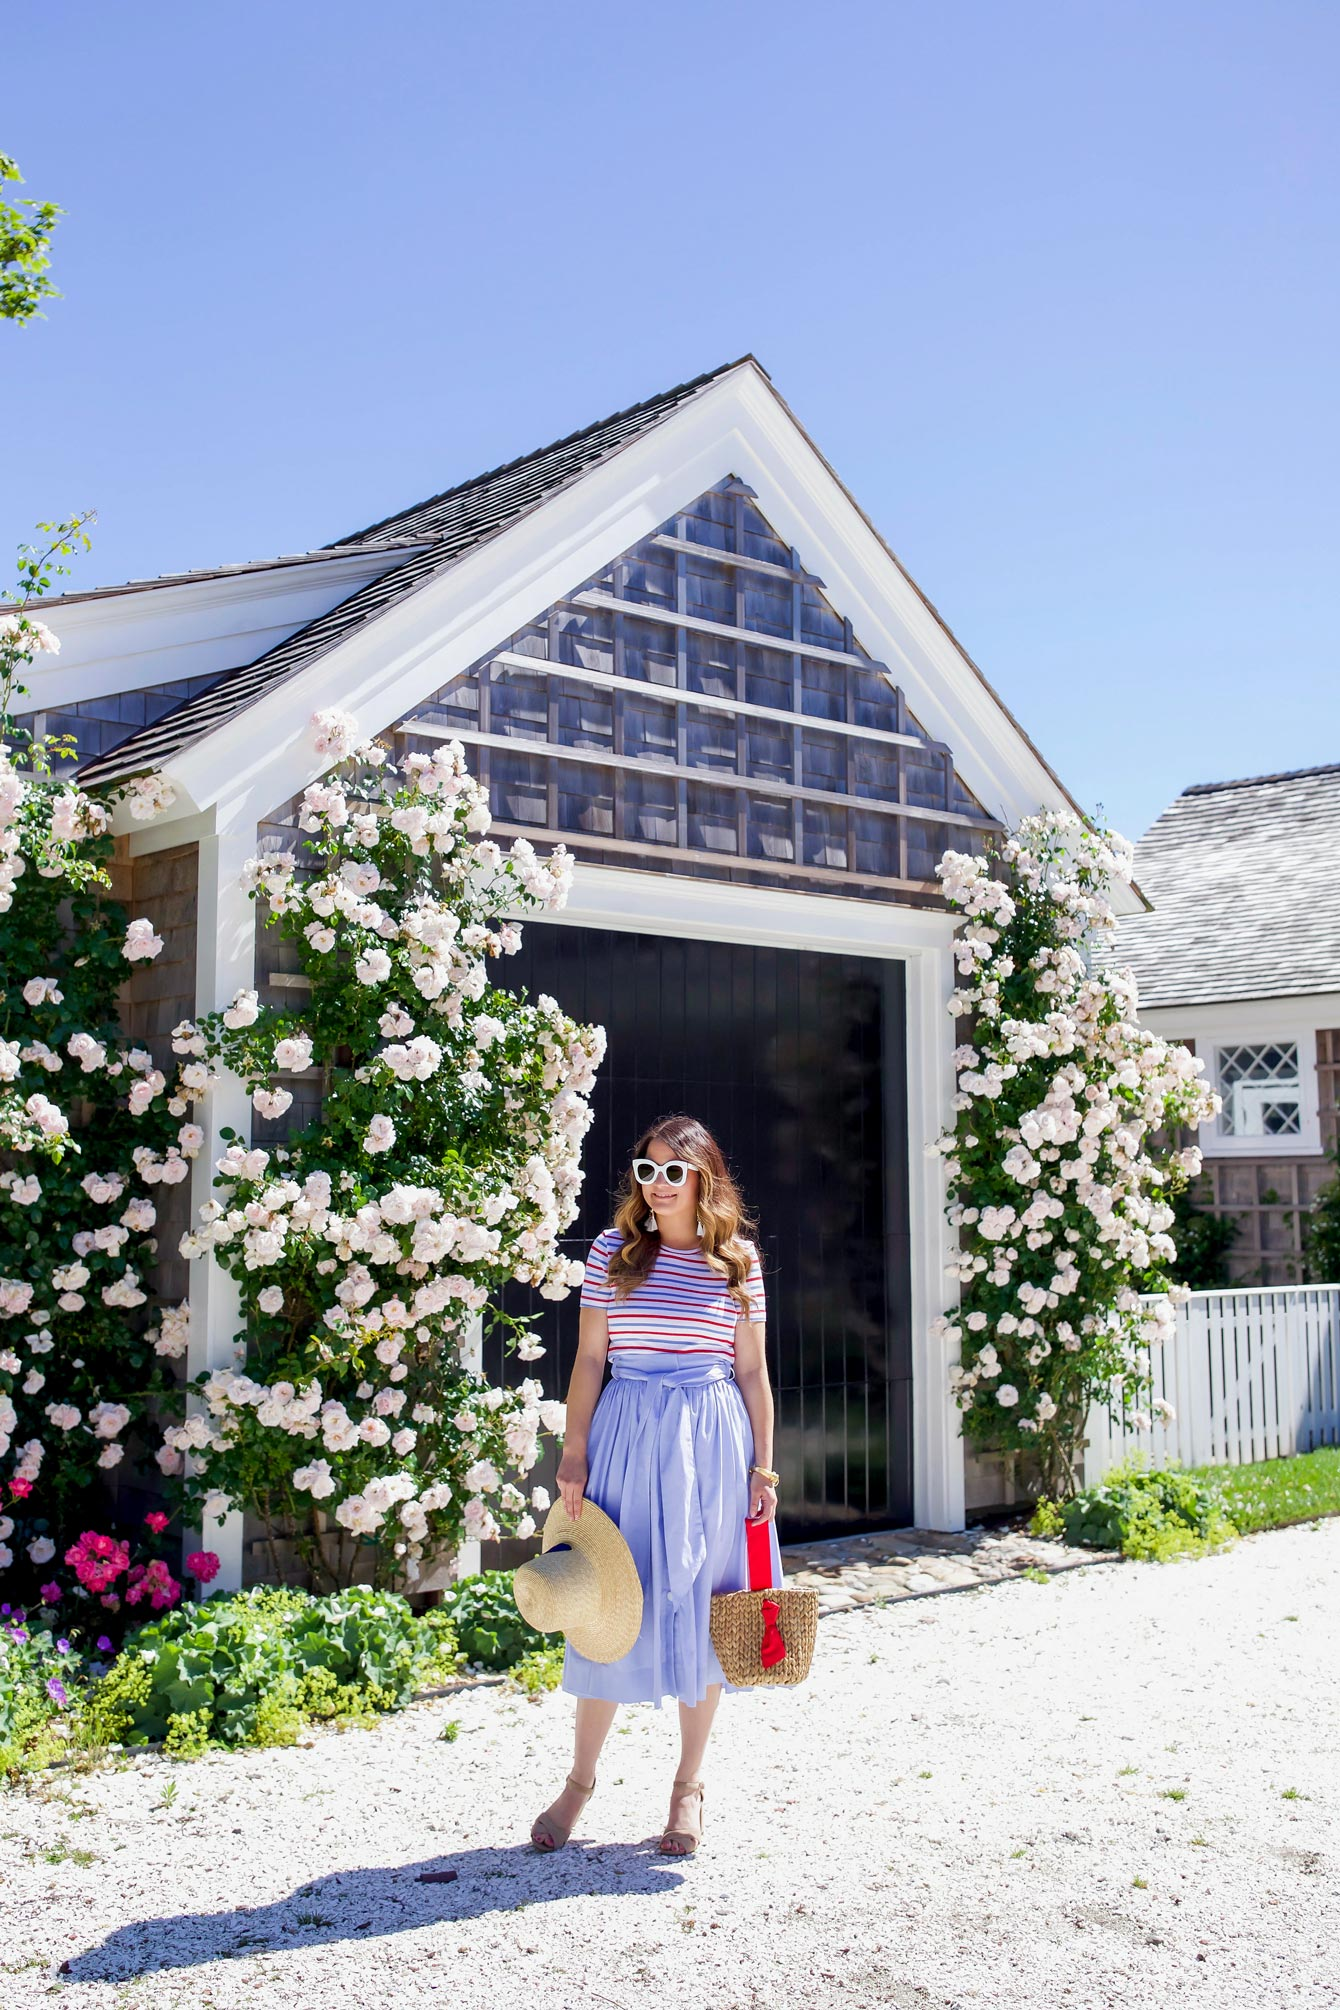 Flower Covered Cottages Sconset Nantucket